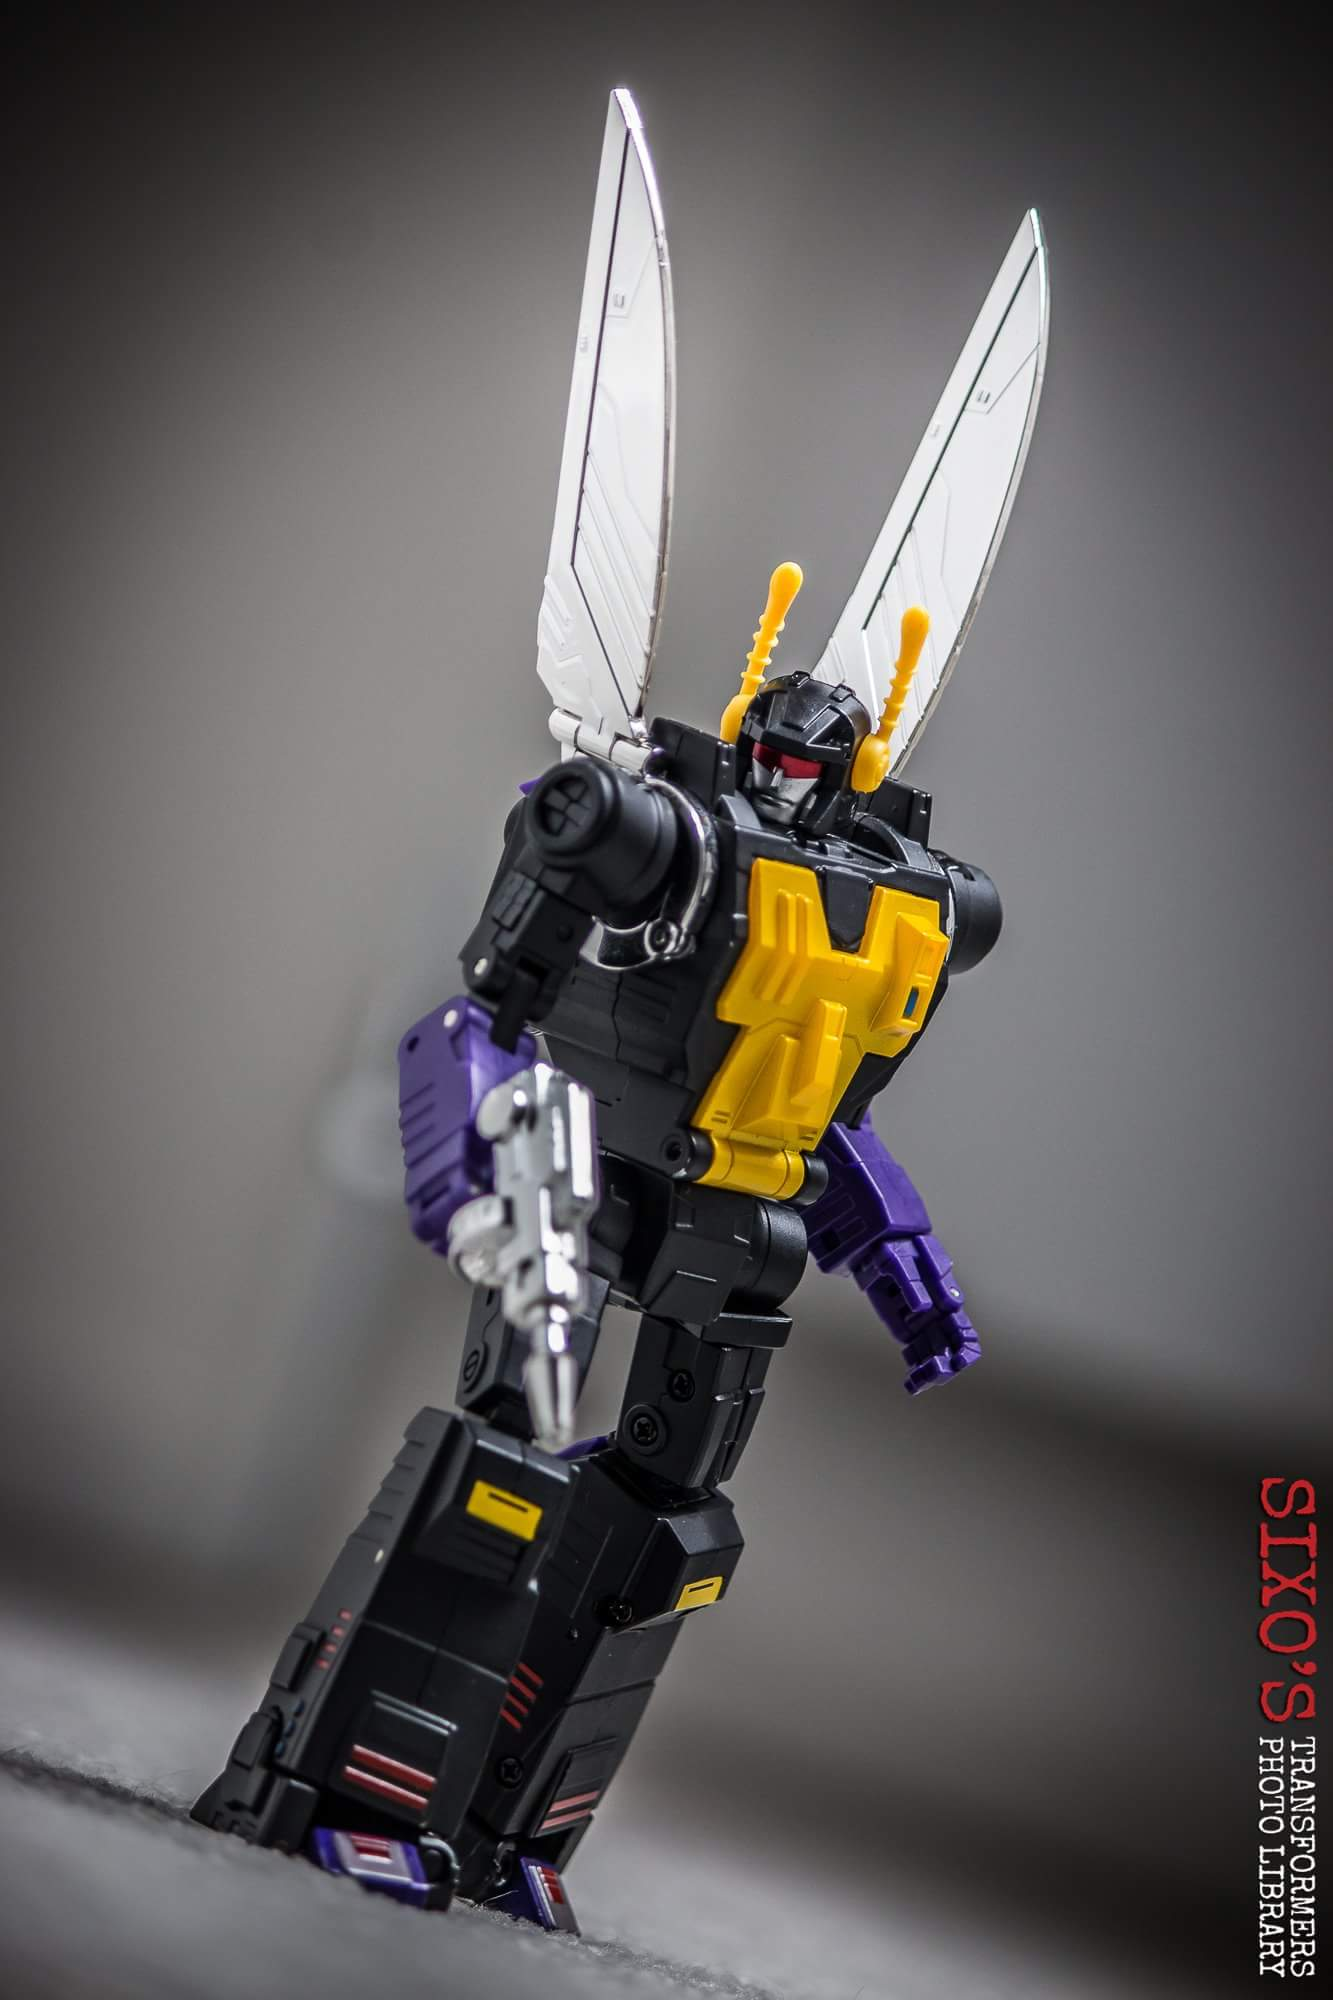 [Fanstoys] Produit Tiers - Jouet FT-12 Grenadier / FT-13 Mercenary / FT-14 Forager - aka Insecticons - Page 4 RFHmTKJk